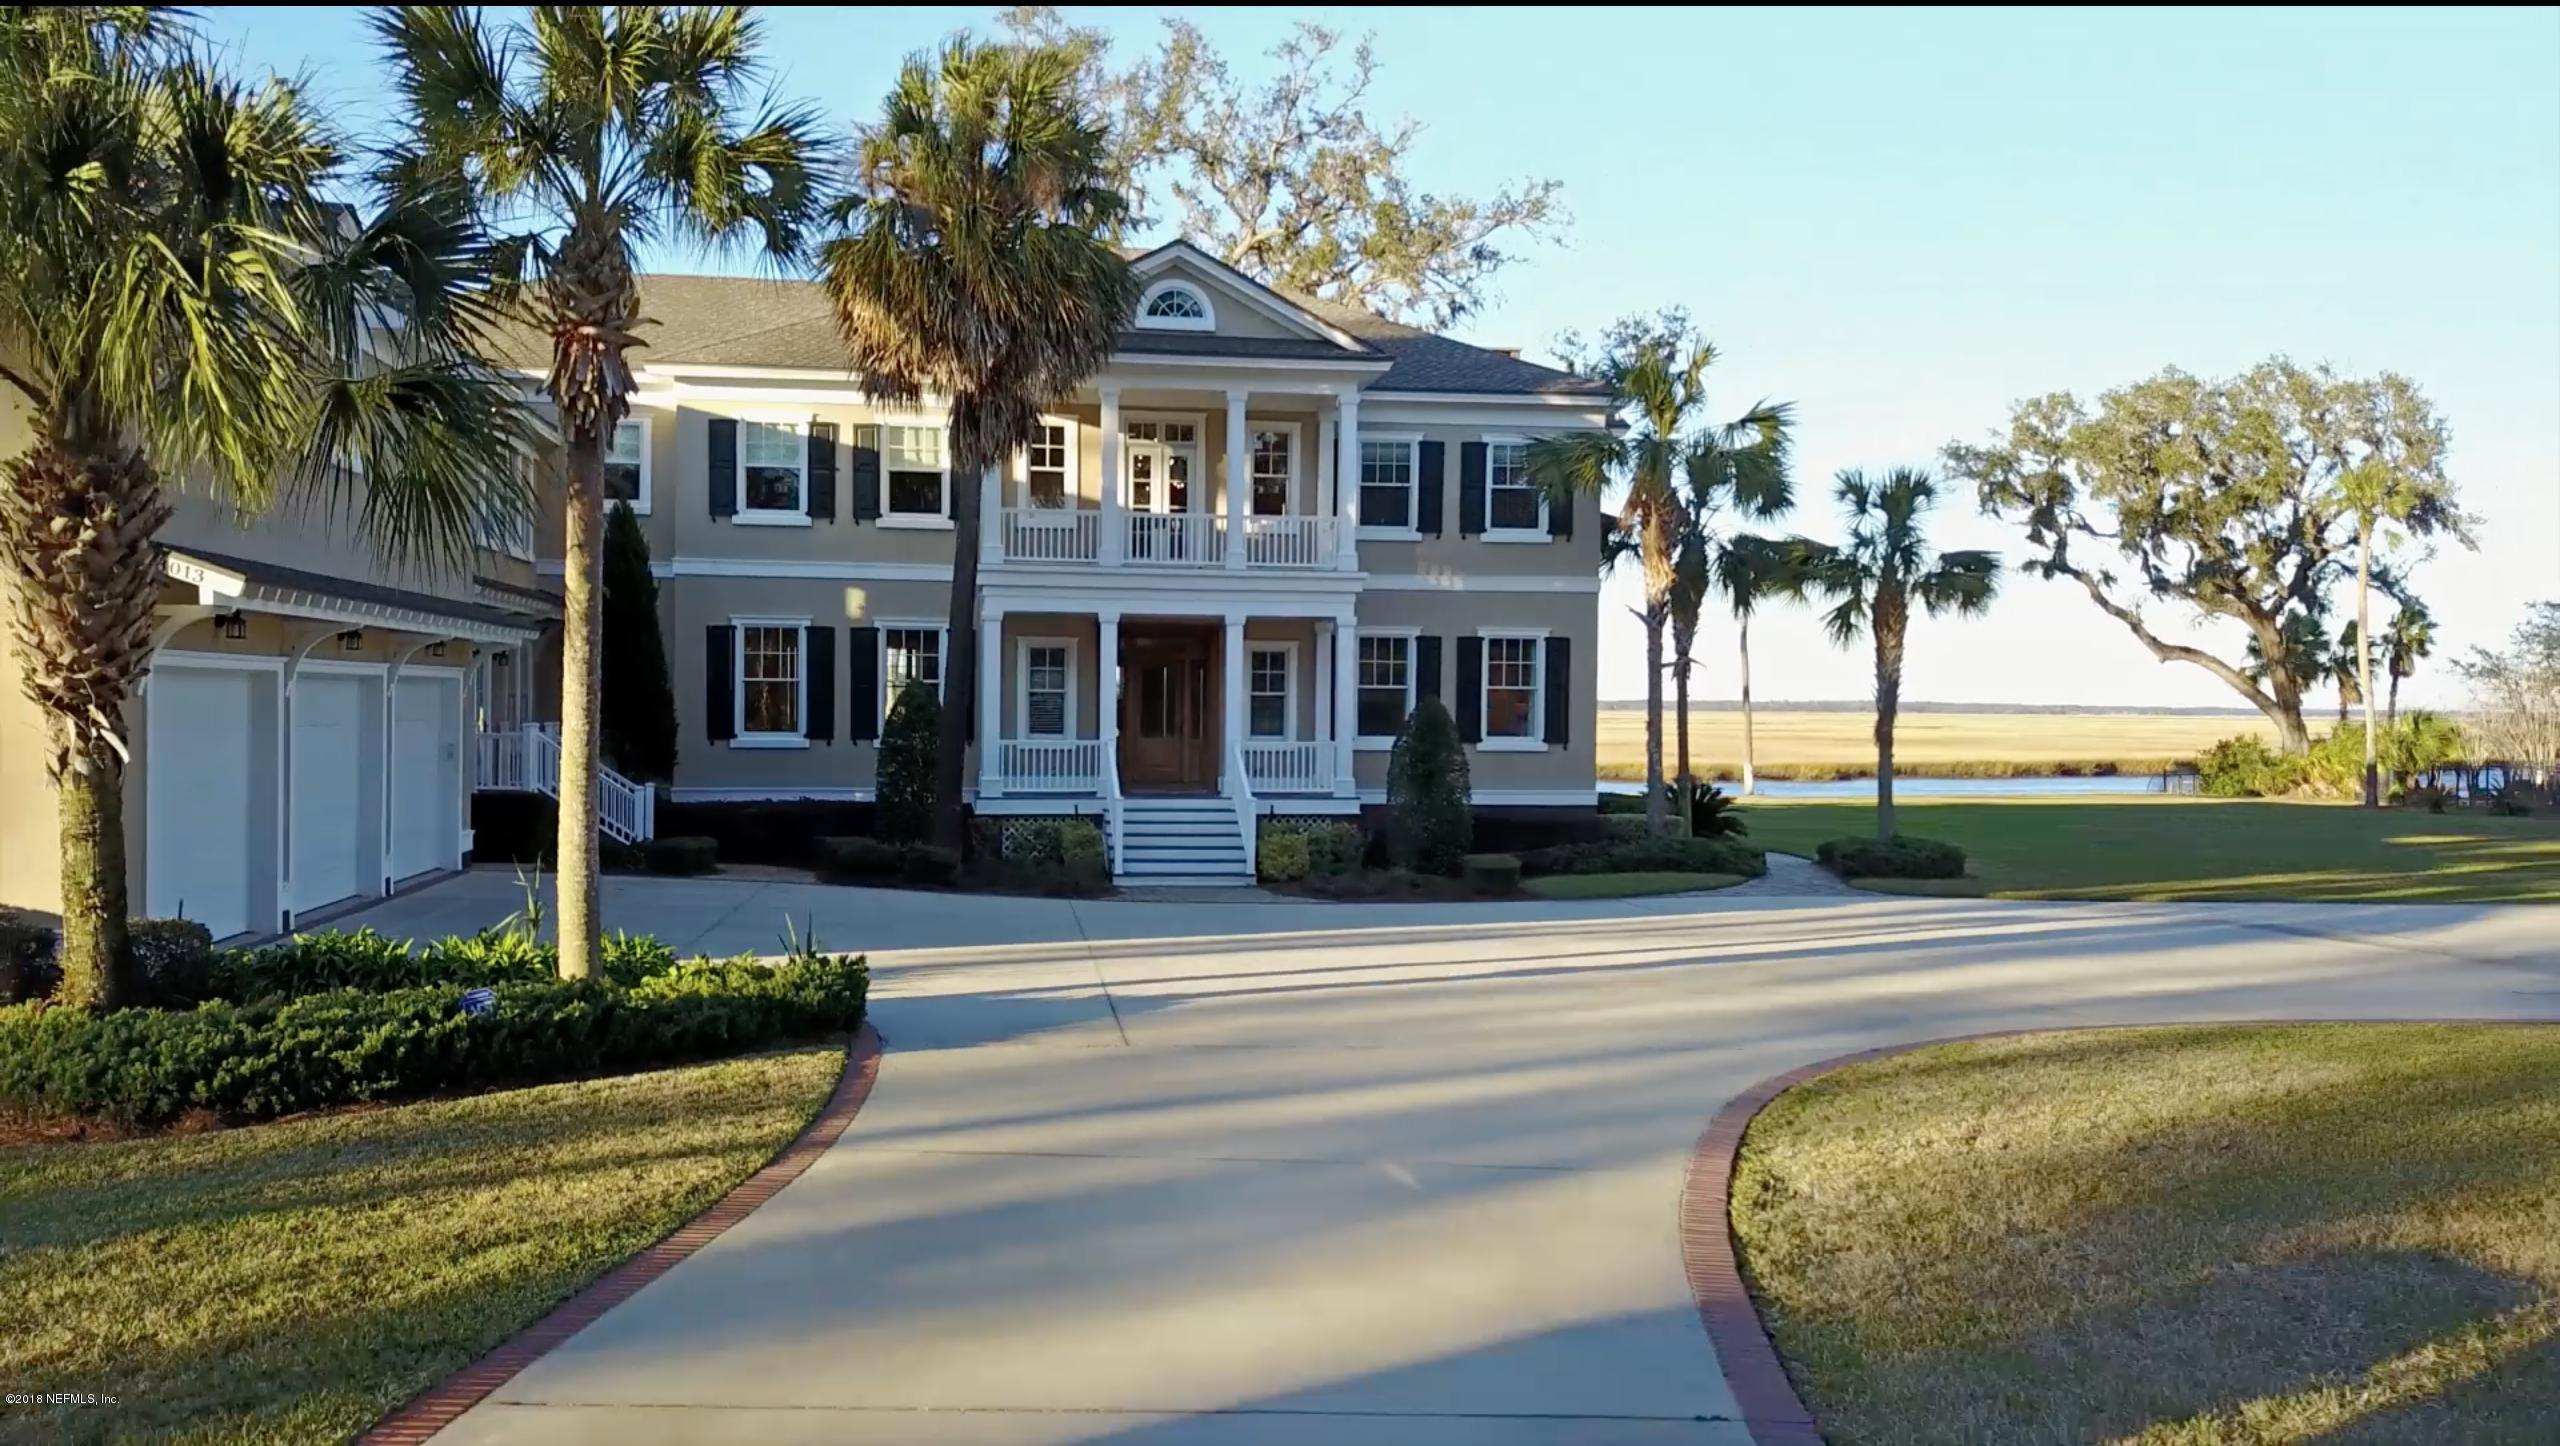 3013 SUNSET LANDING, JACKSONVILLE, FLORIDA 32226, 5 Bedrooms Bedrooms, ,7 BathroomsBathrooms,Residential - single family,For sale,SUNSET LANDING,948921